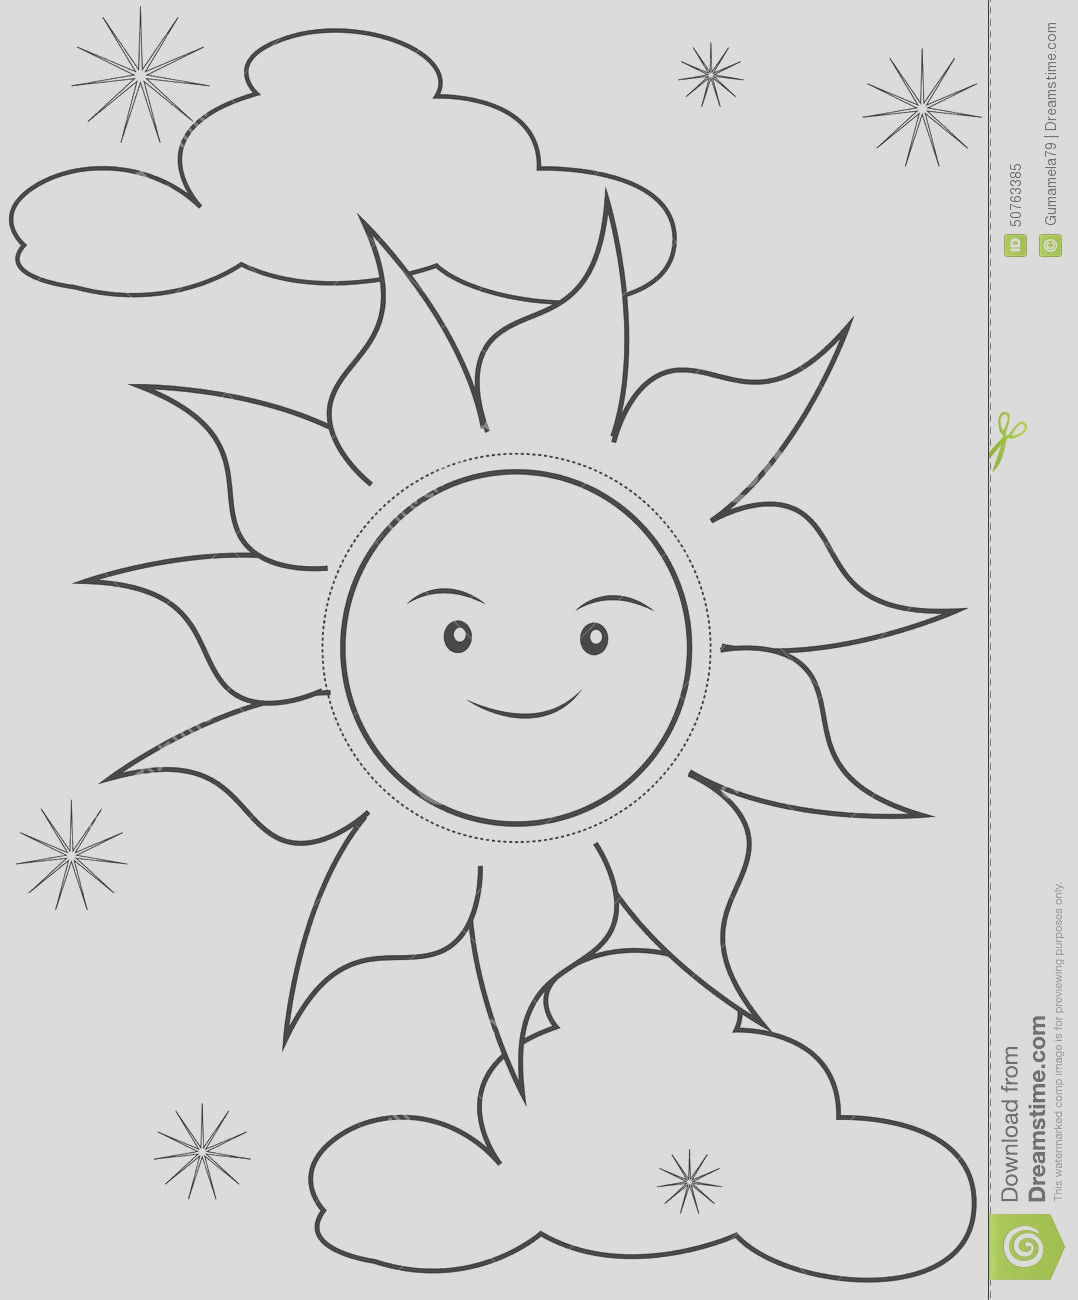 stock illustration sun coloring page useful as book kids image